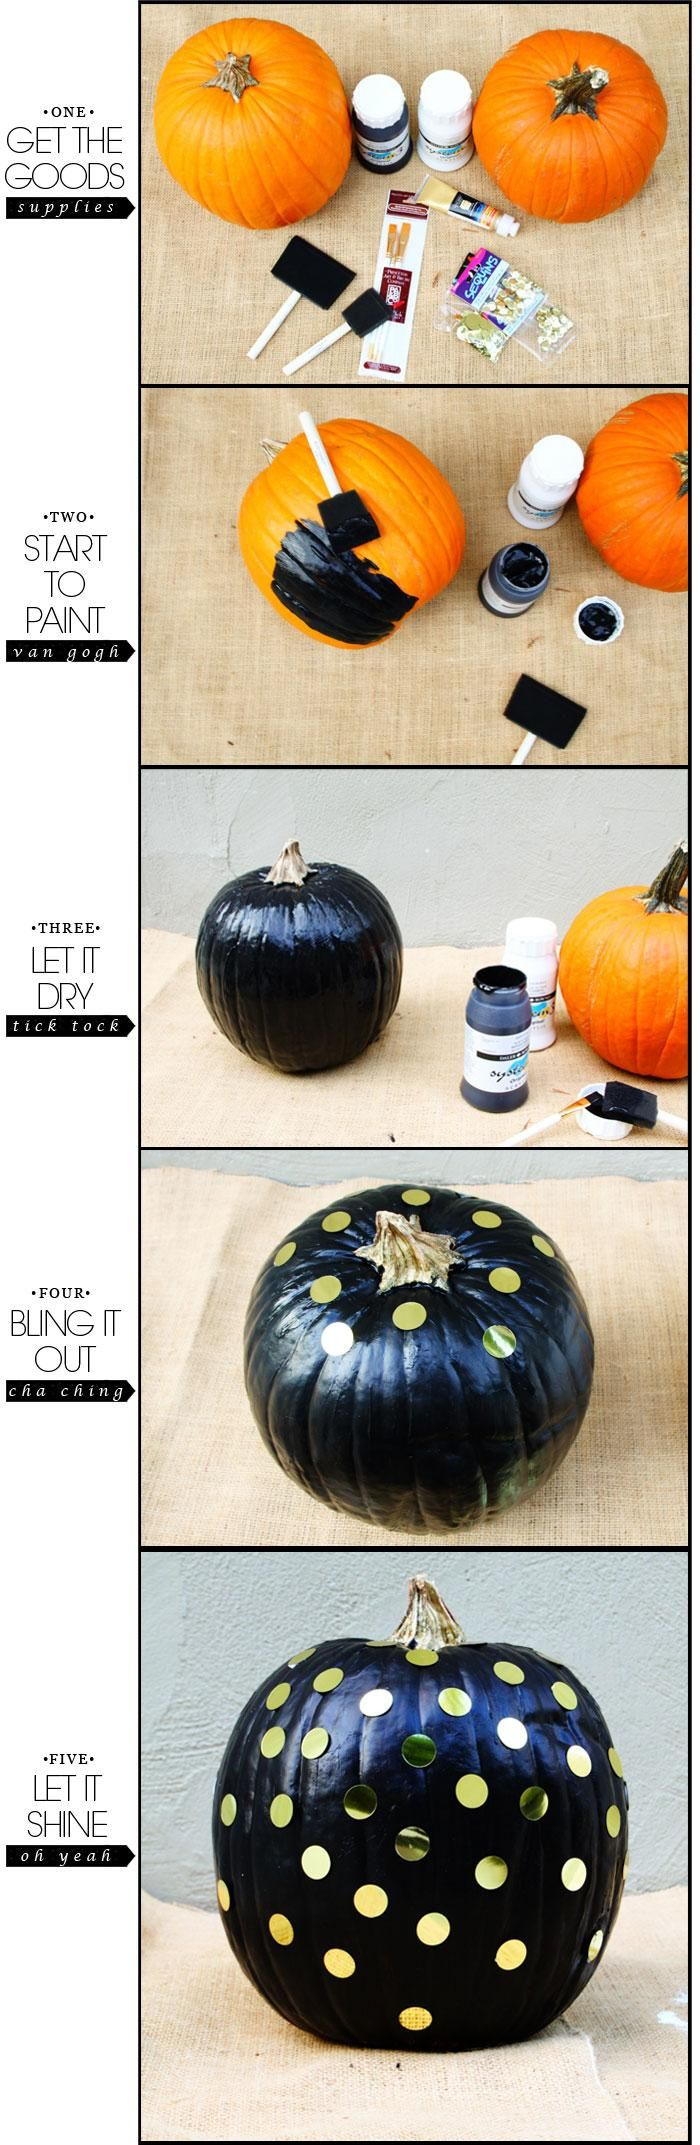 #KatieSheaDesign ♡❤ ❥ DIY #Halloween: DIY Pumpkin Project: DIY Halloween Decor